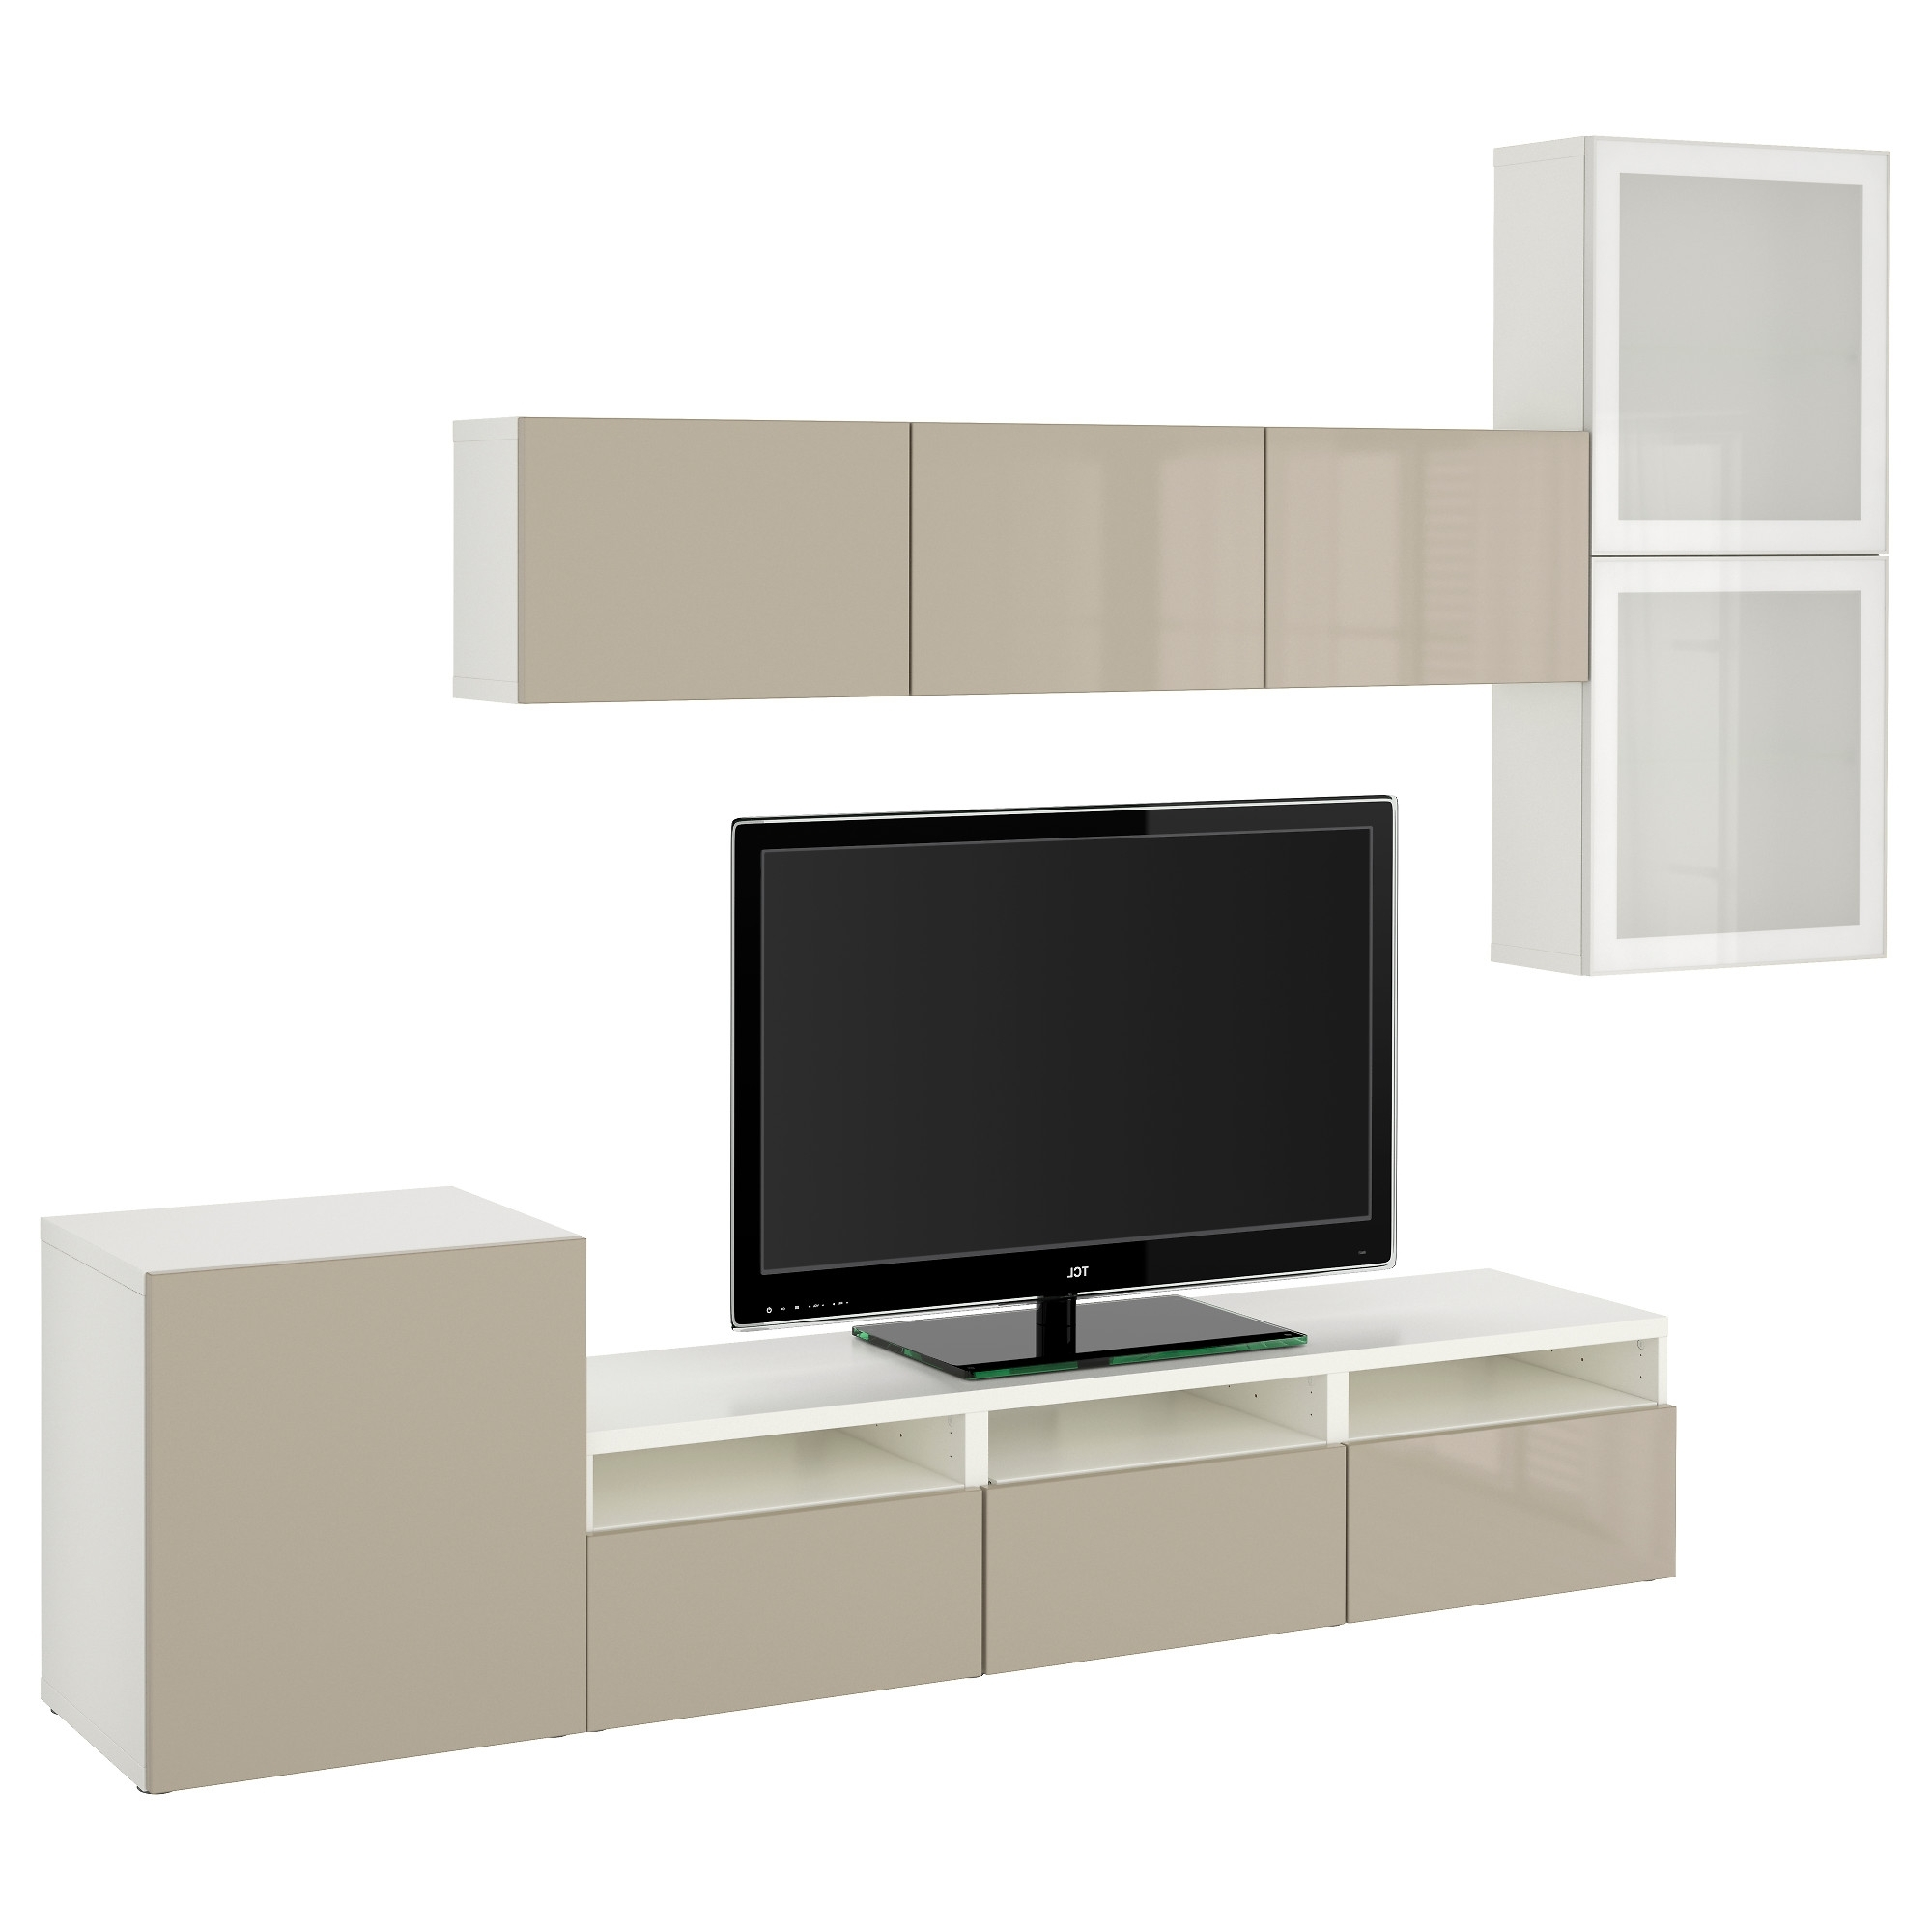 new foter open center design bookcases bookcase furniture homeliving unit shelf from with tv sliding grange stand vivo york bookshelf com wall